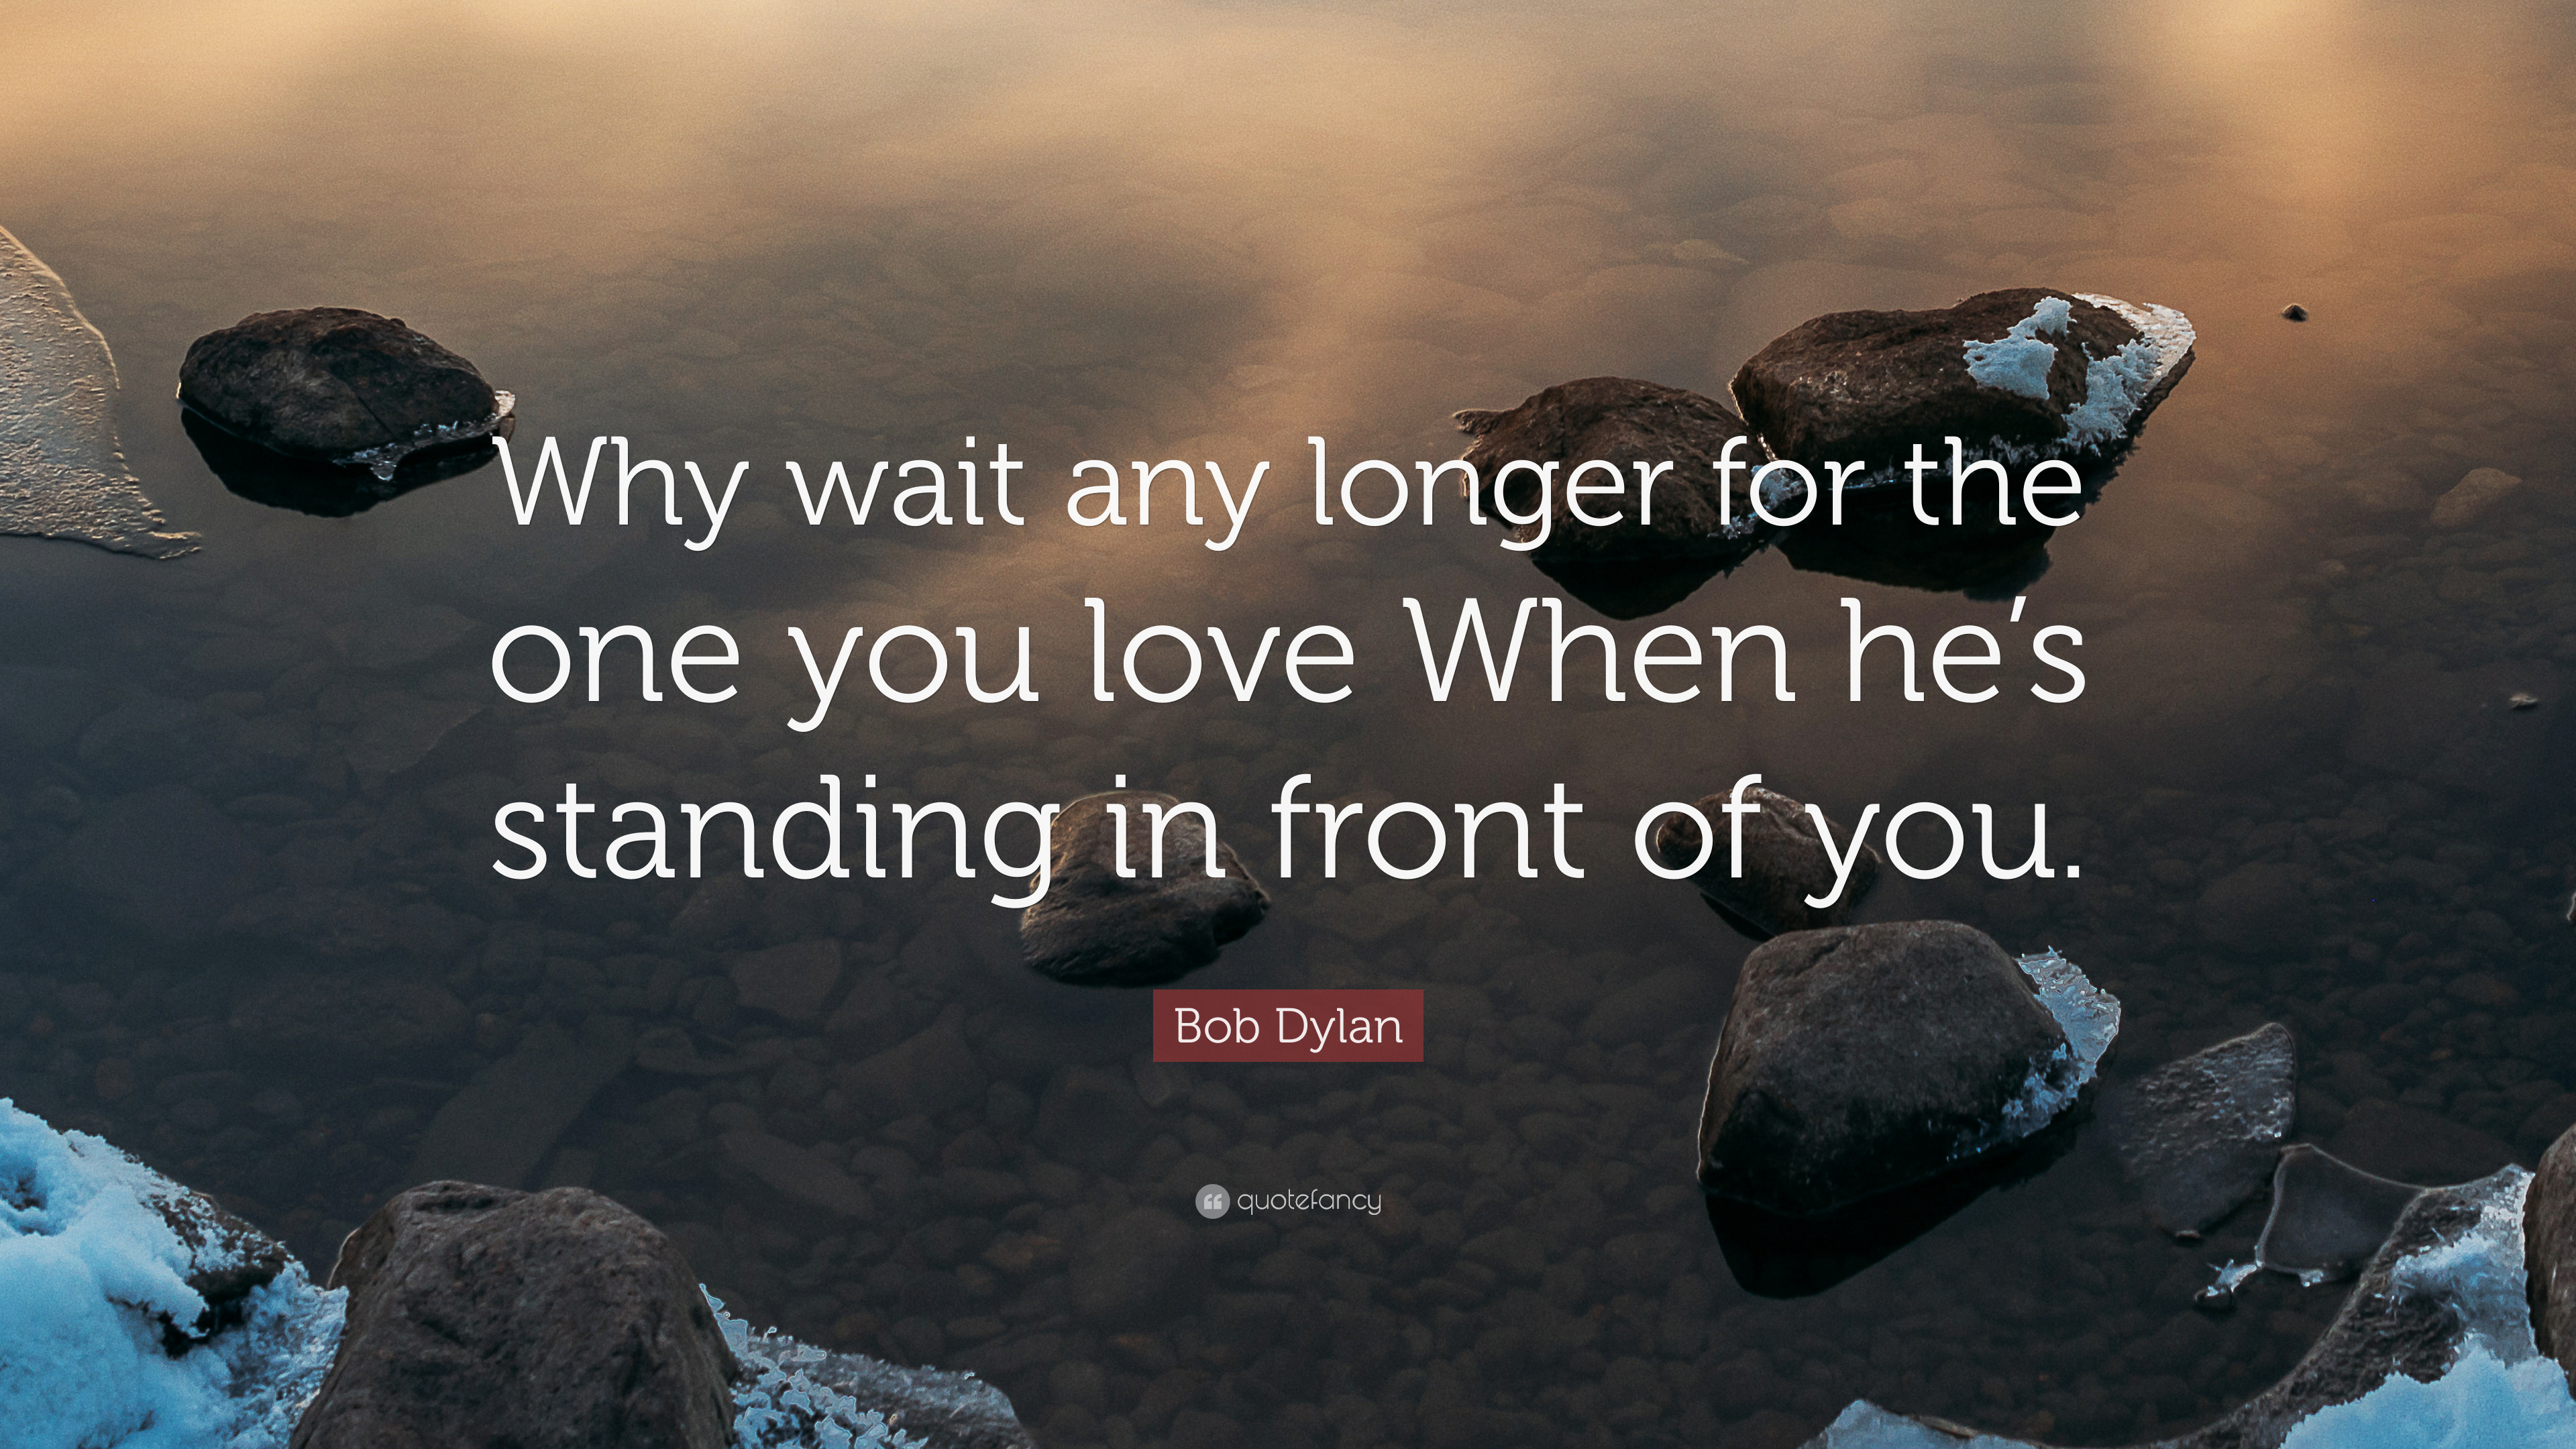 How to wait for a loved one